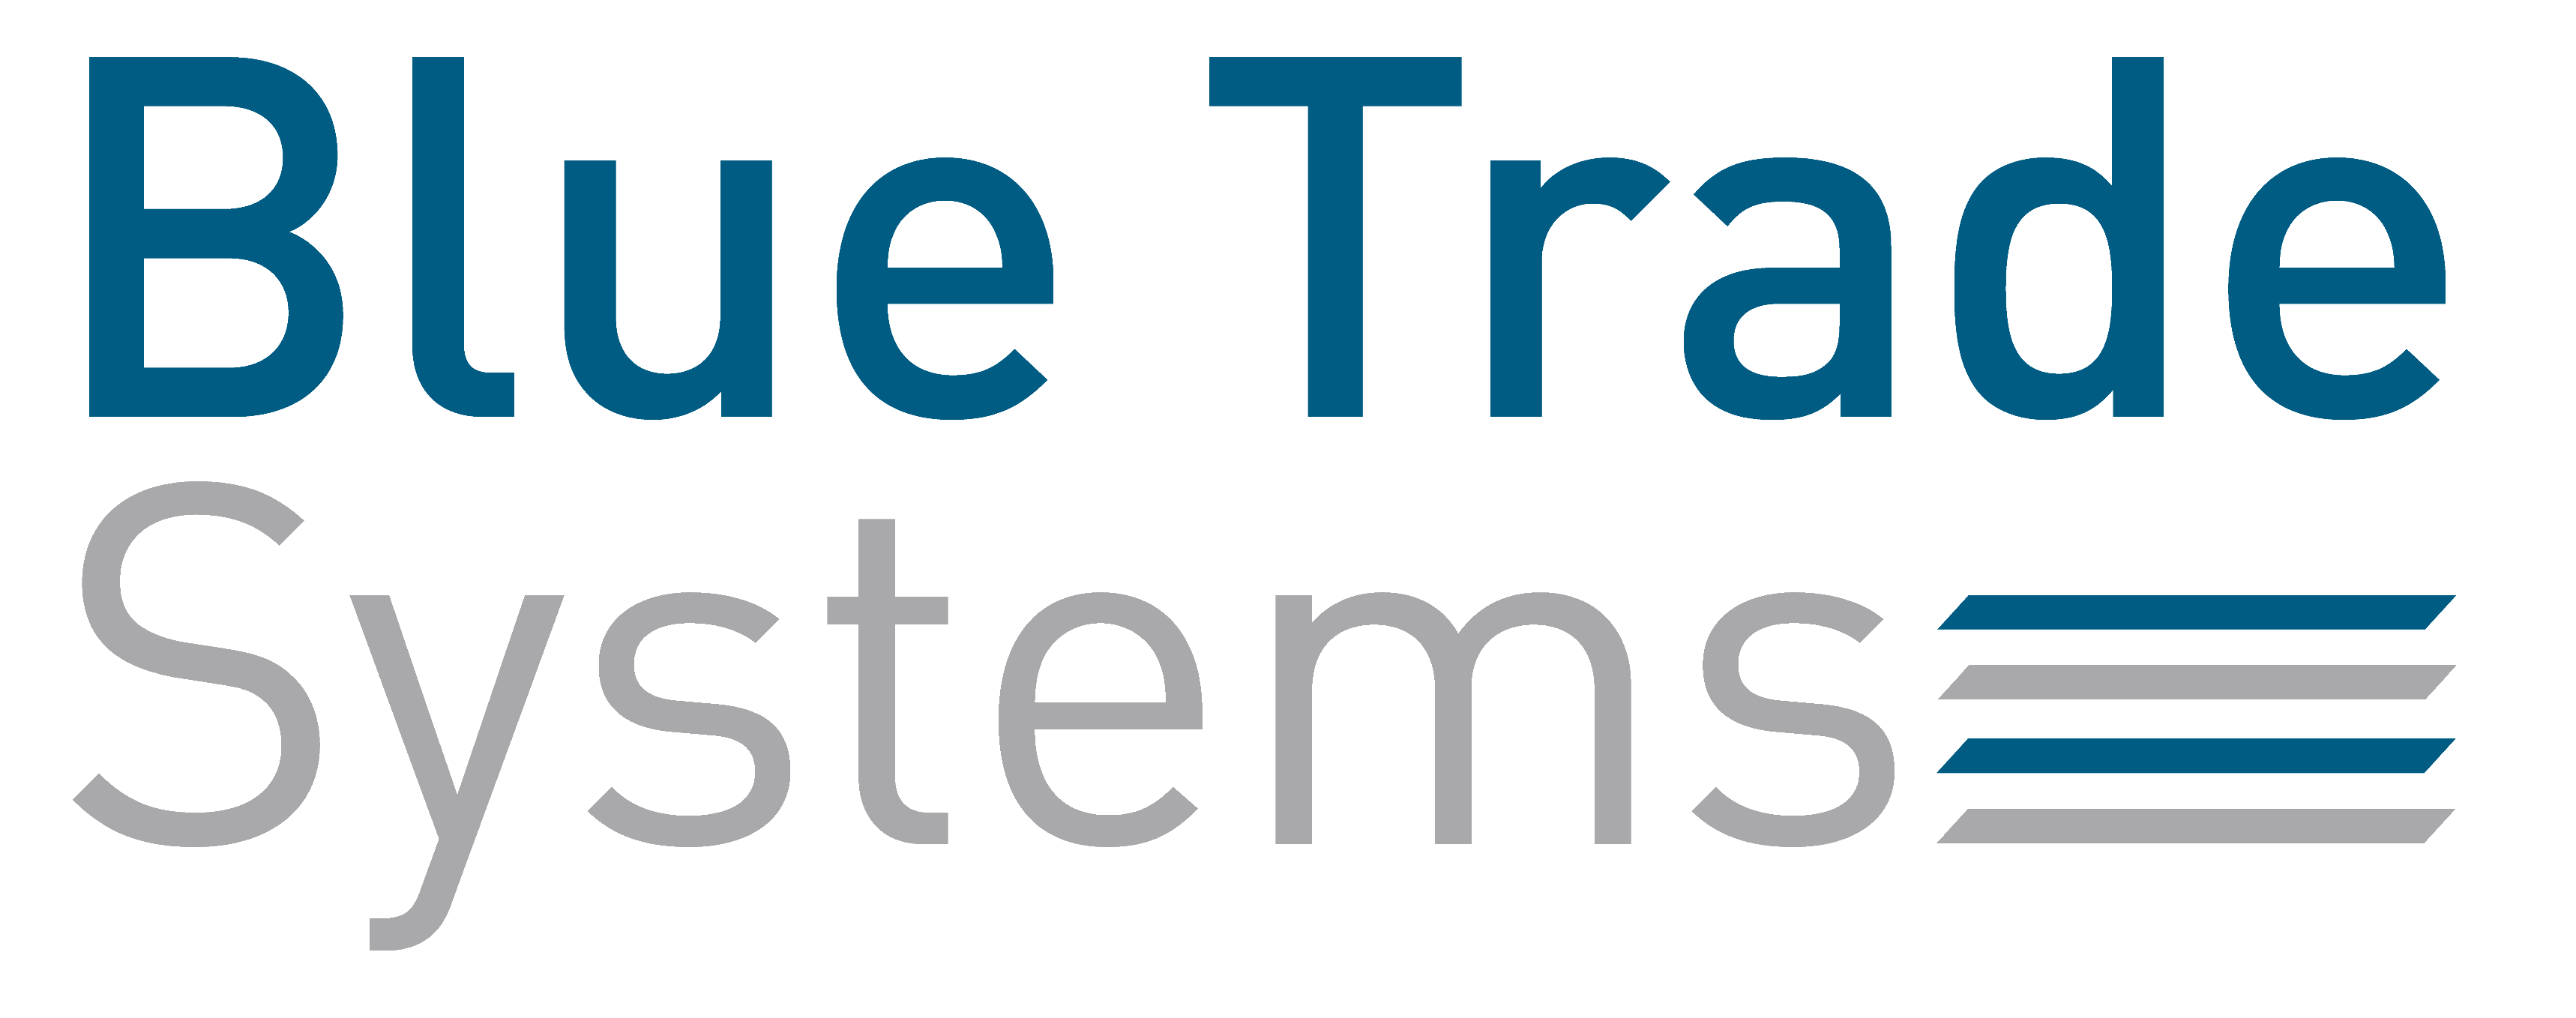 Blue Trade Systems